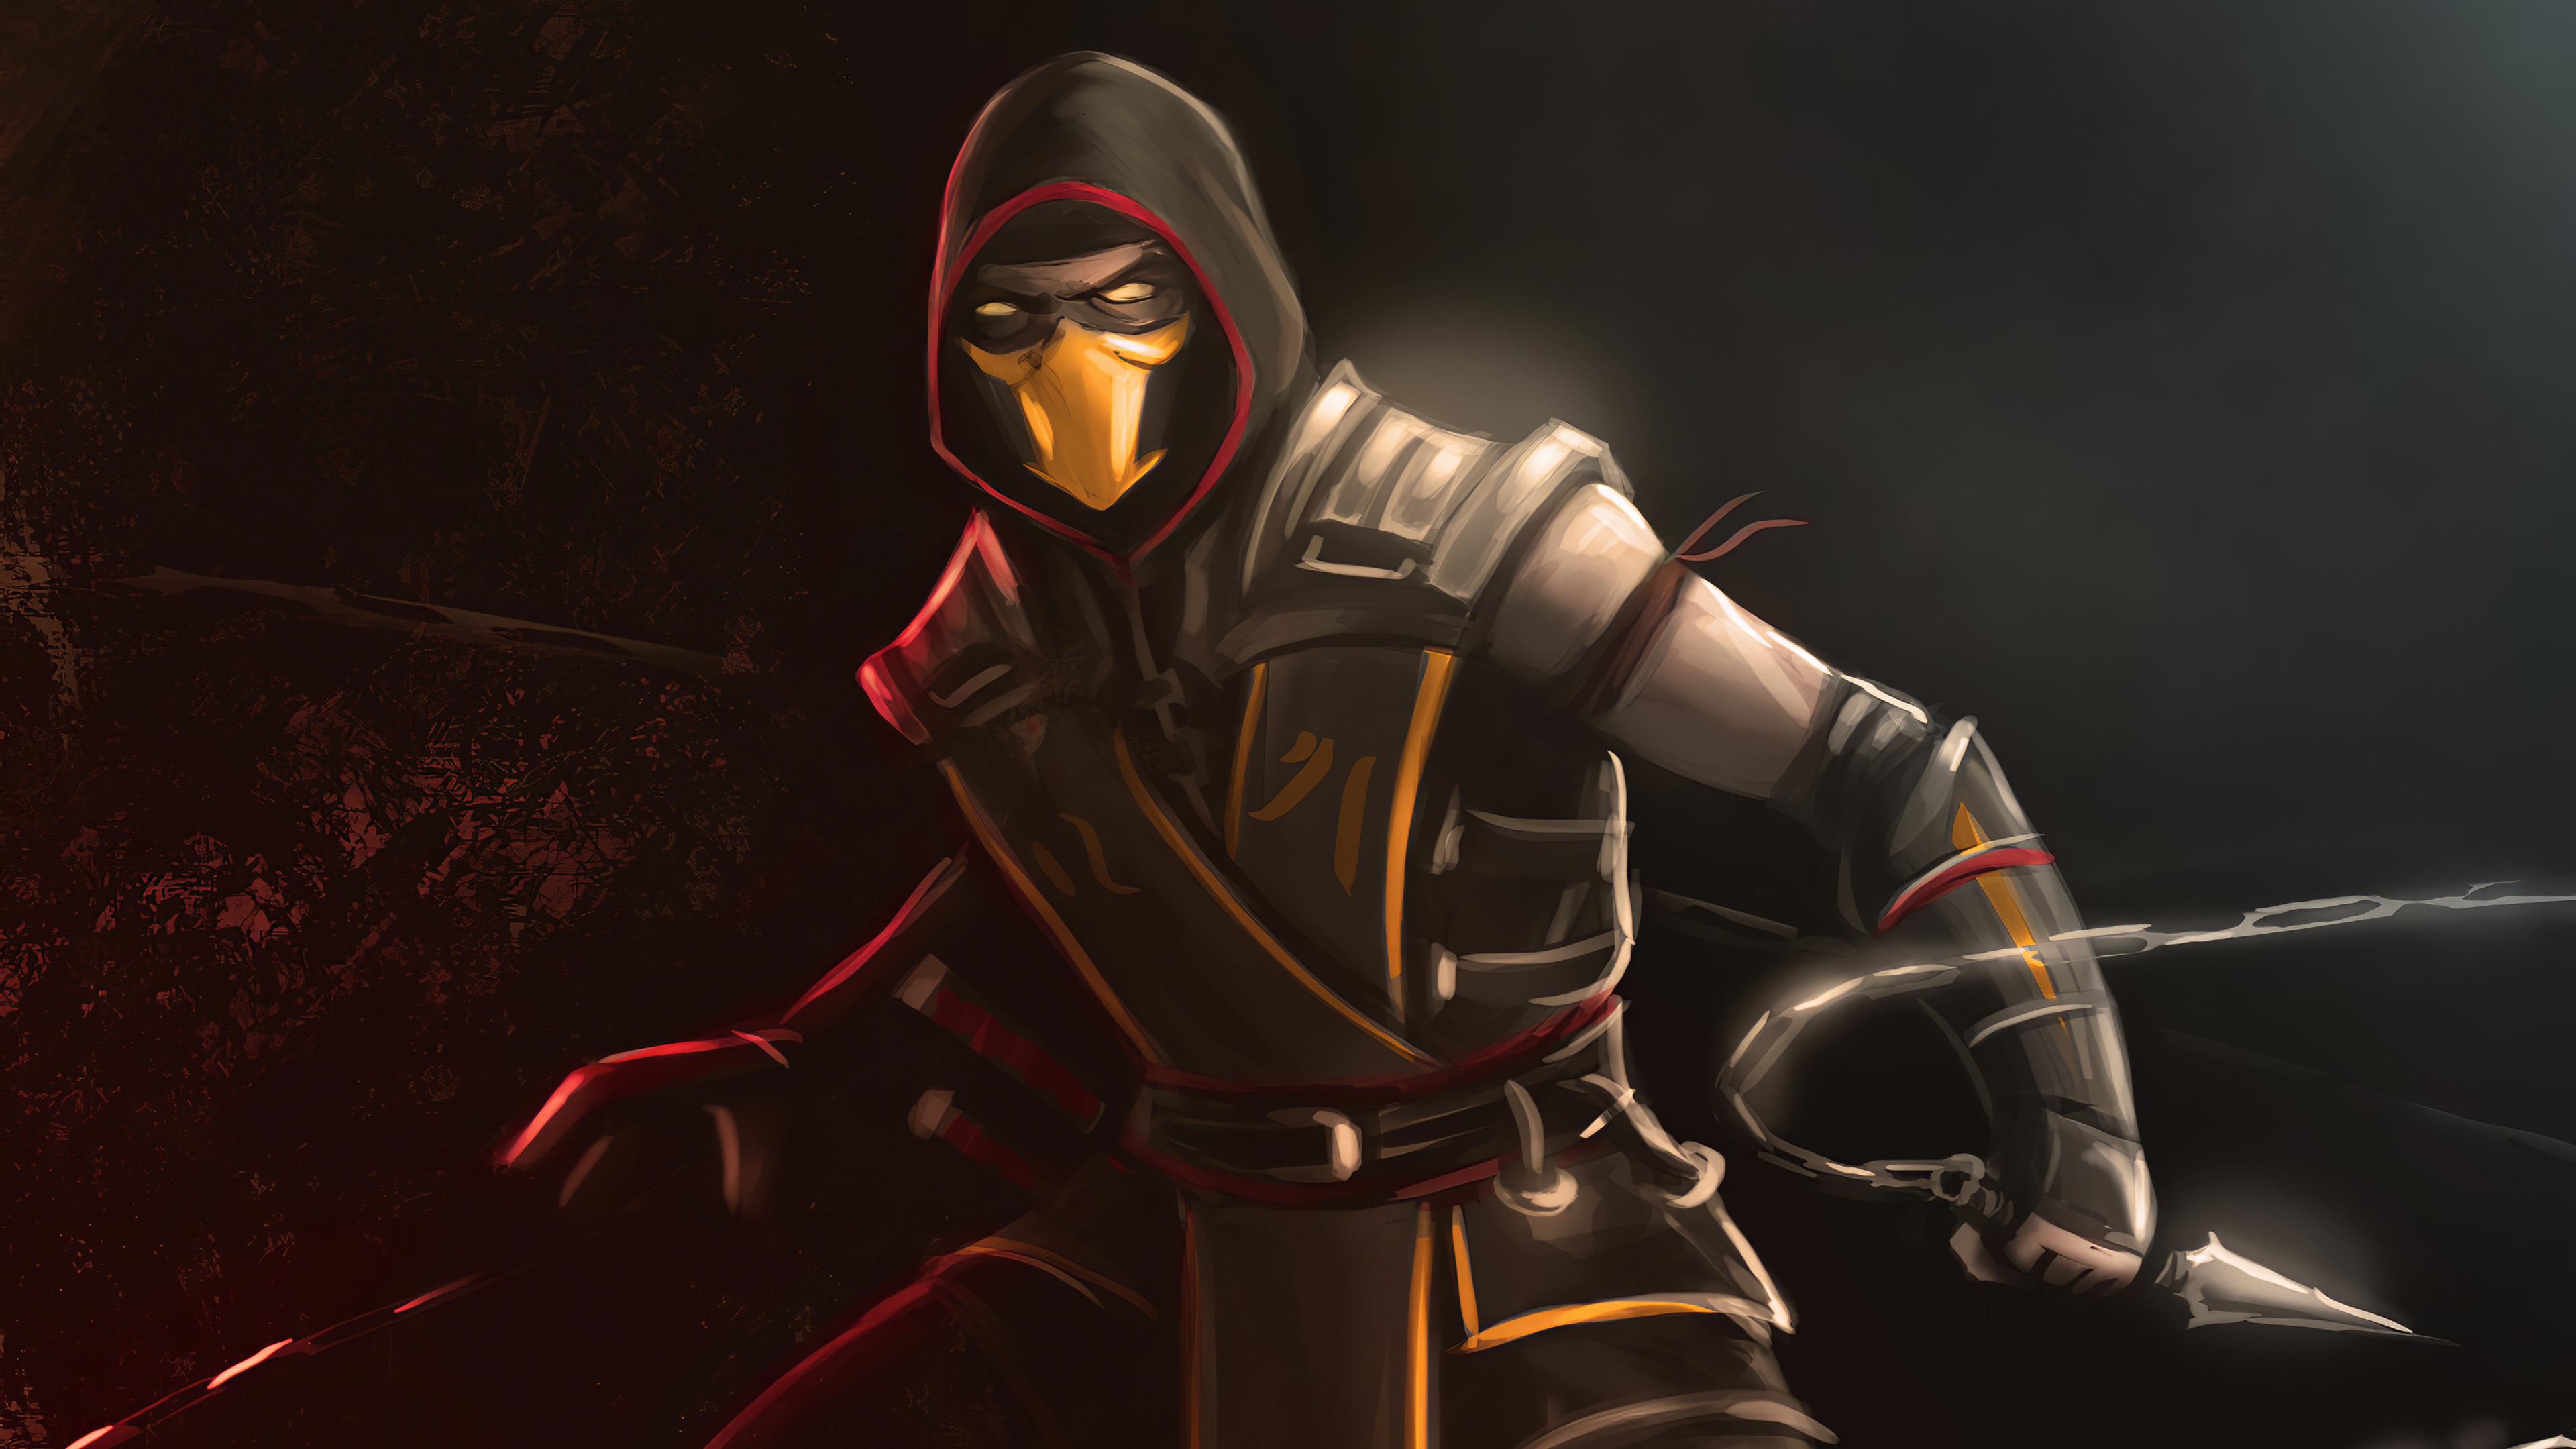 scorpion mortal kombat 1572370687 - Scorpion Mortal Kombat - sub zero wallpapers, scorpion wallpapers, mortal kombat wallpapers, hd-wallpapers, games wallpapers, artstation wallpapers, 4k-wallpapers